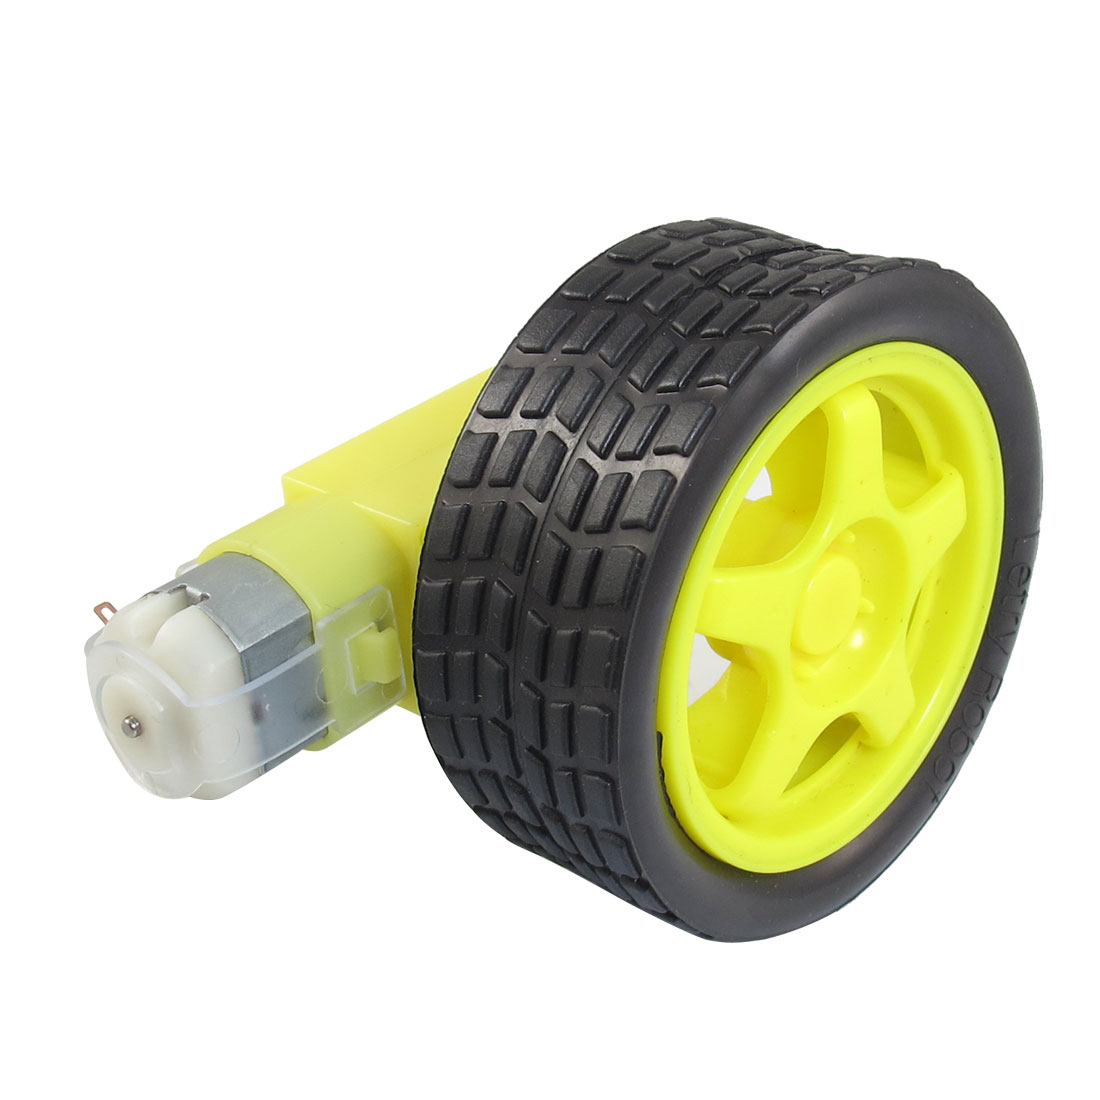 Yellow Black Tire Wheel + Single Shaft Geared Motor 15RPM 160mA 3V DC